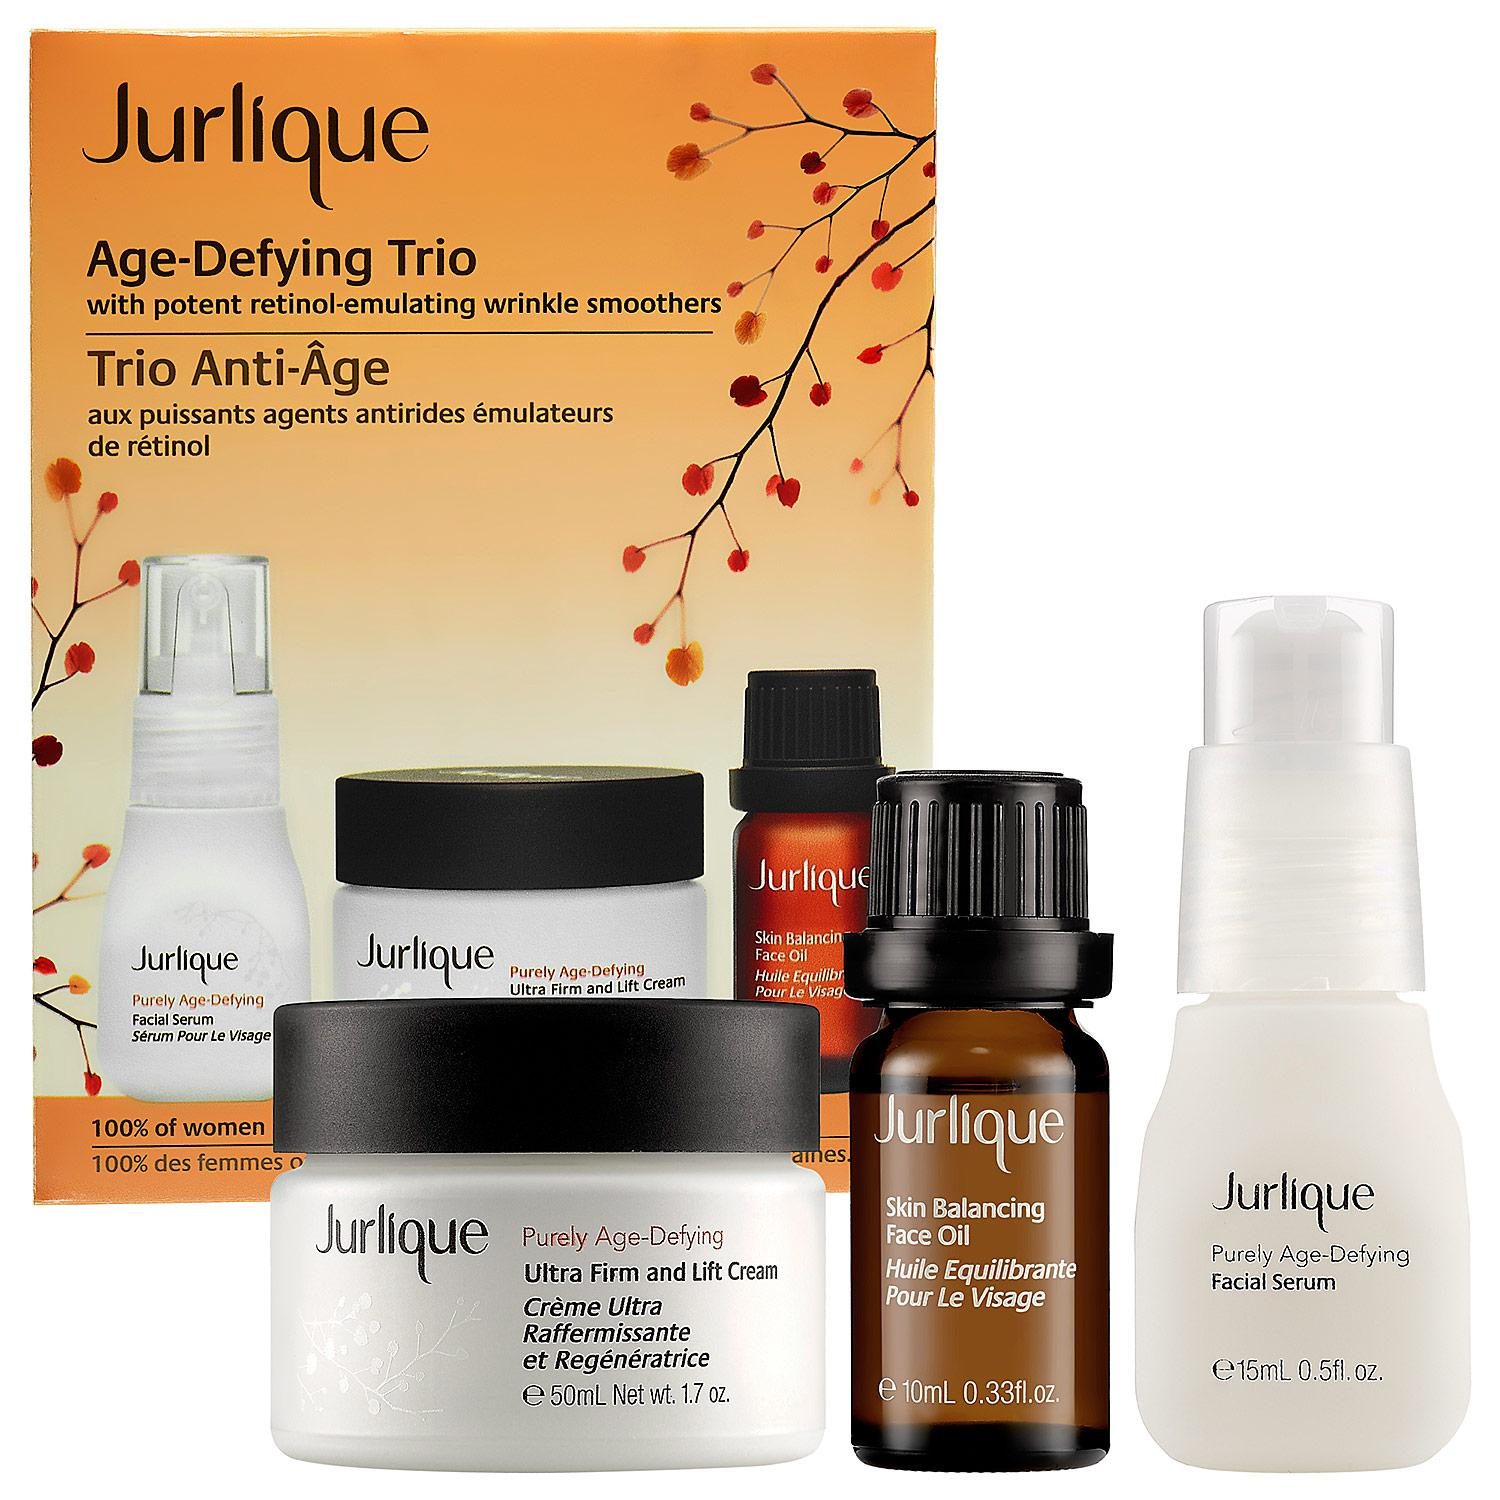 Age-Defying Trio With Potent Retinol-Emulating Wrinkle Smoothers